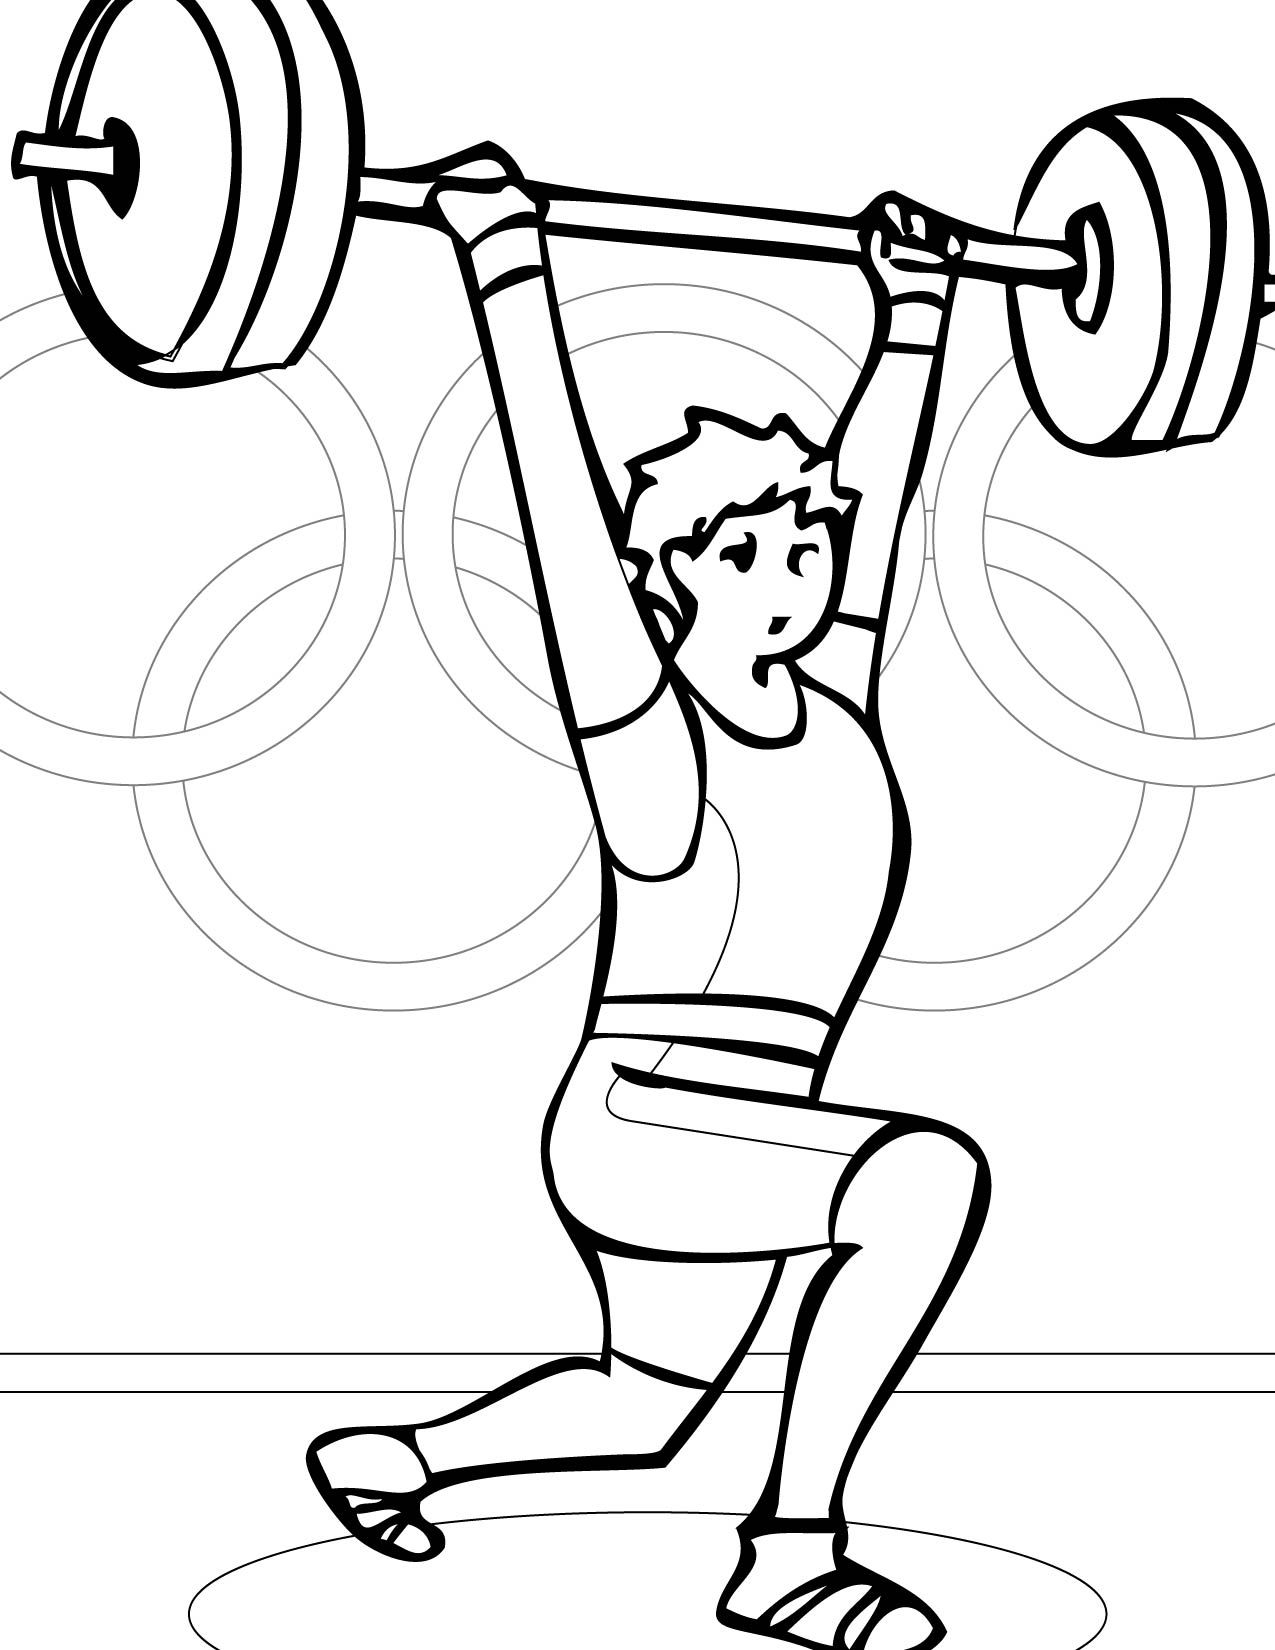 OLYMPIC SPORTS COLORING PAGES ΑναζΠτηση Google